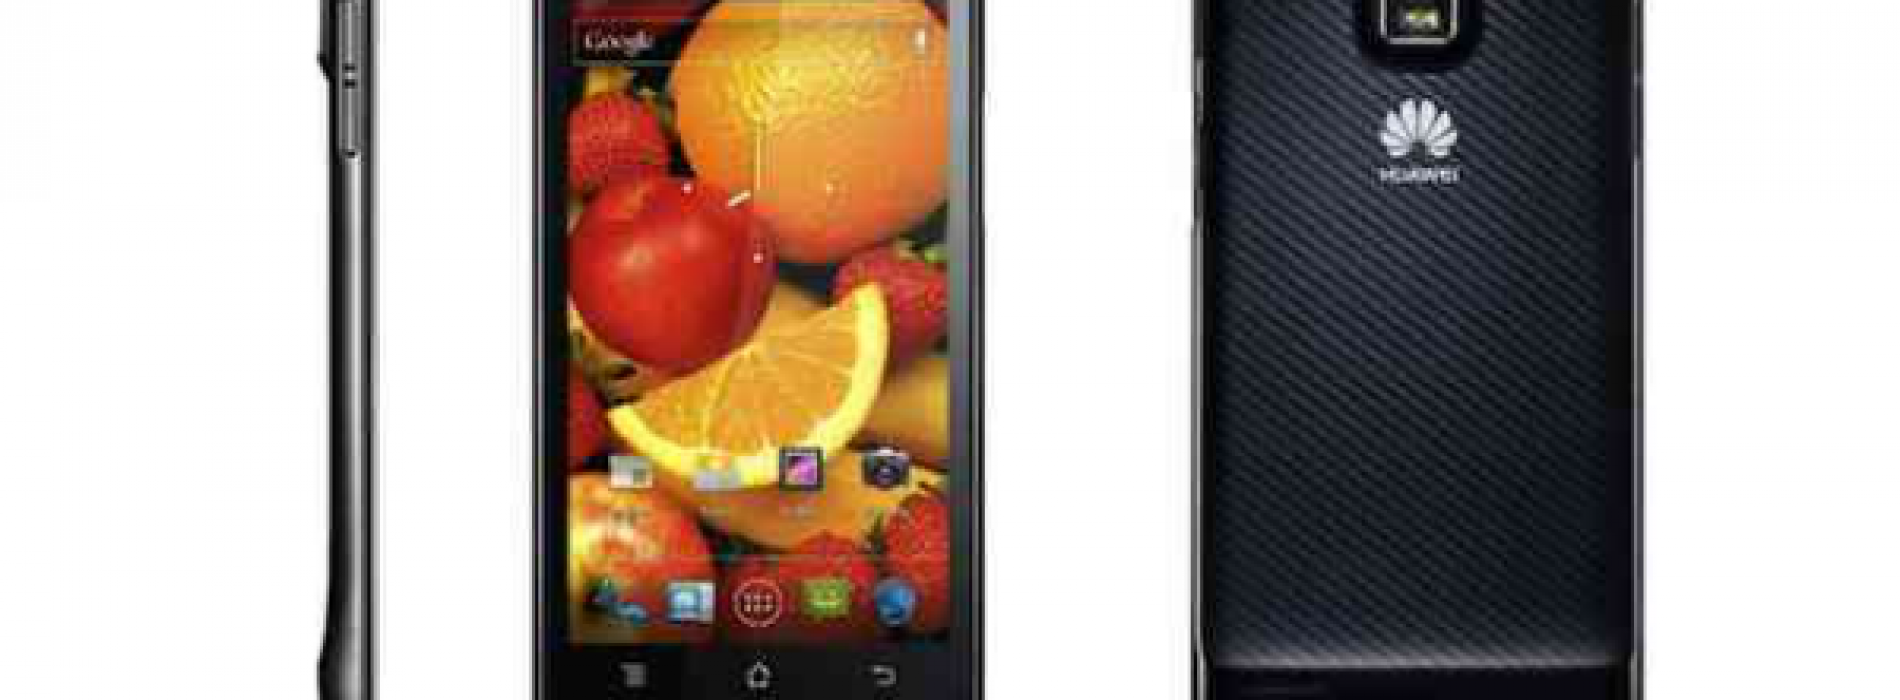 Unlocked Huawei Ascend P1 hits Amazon